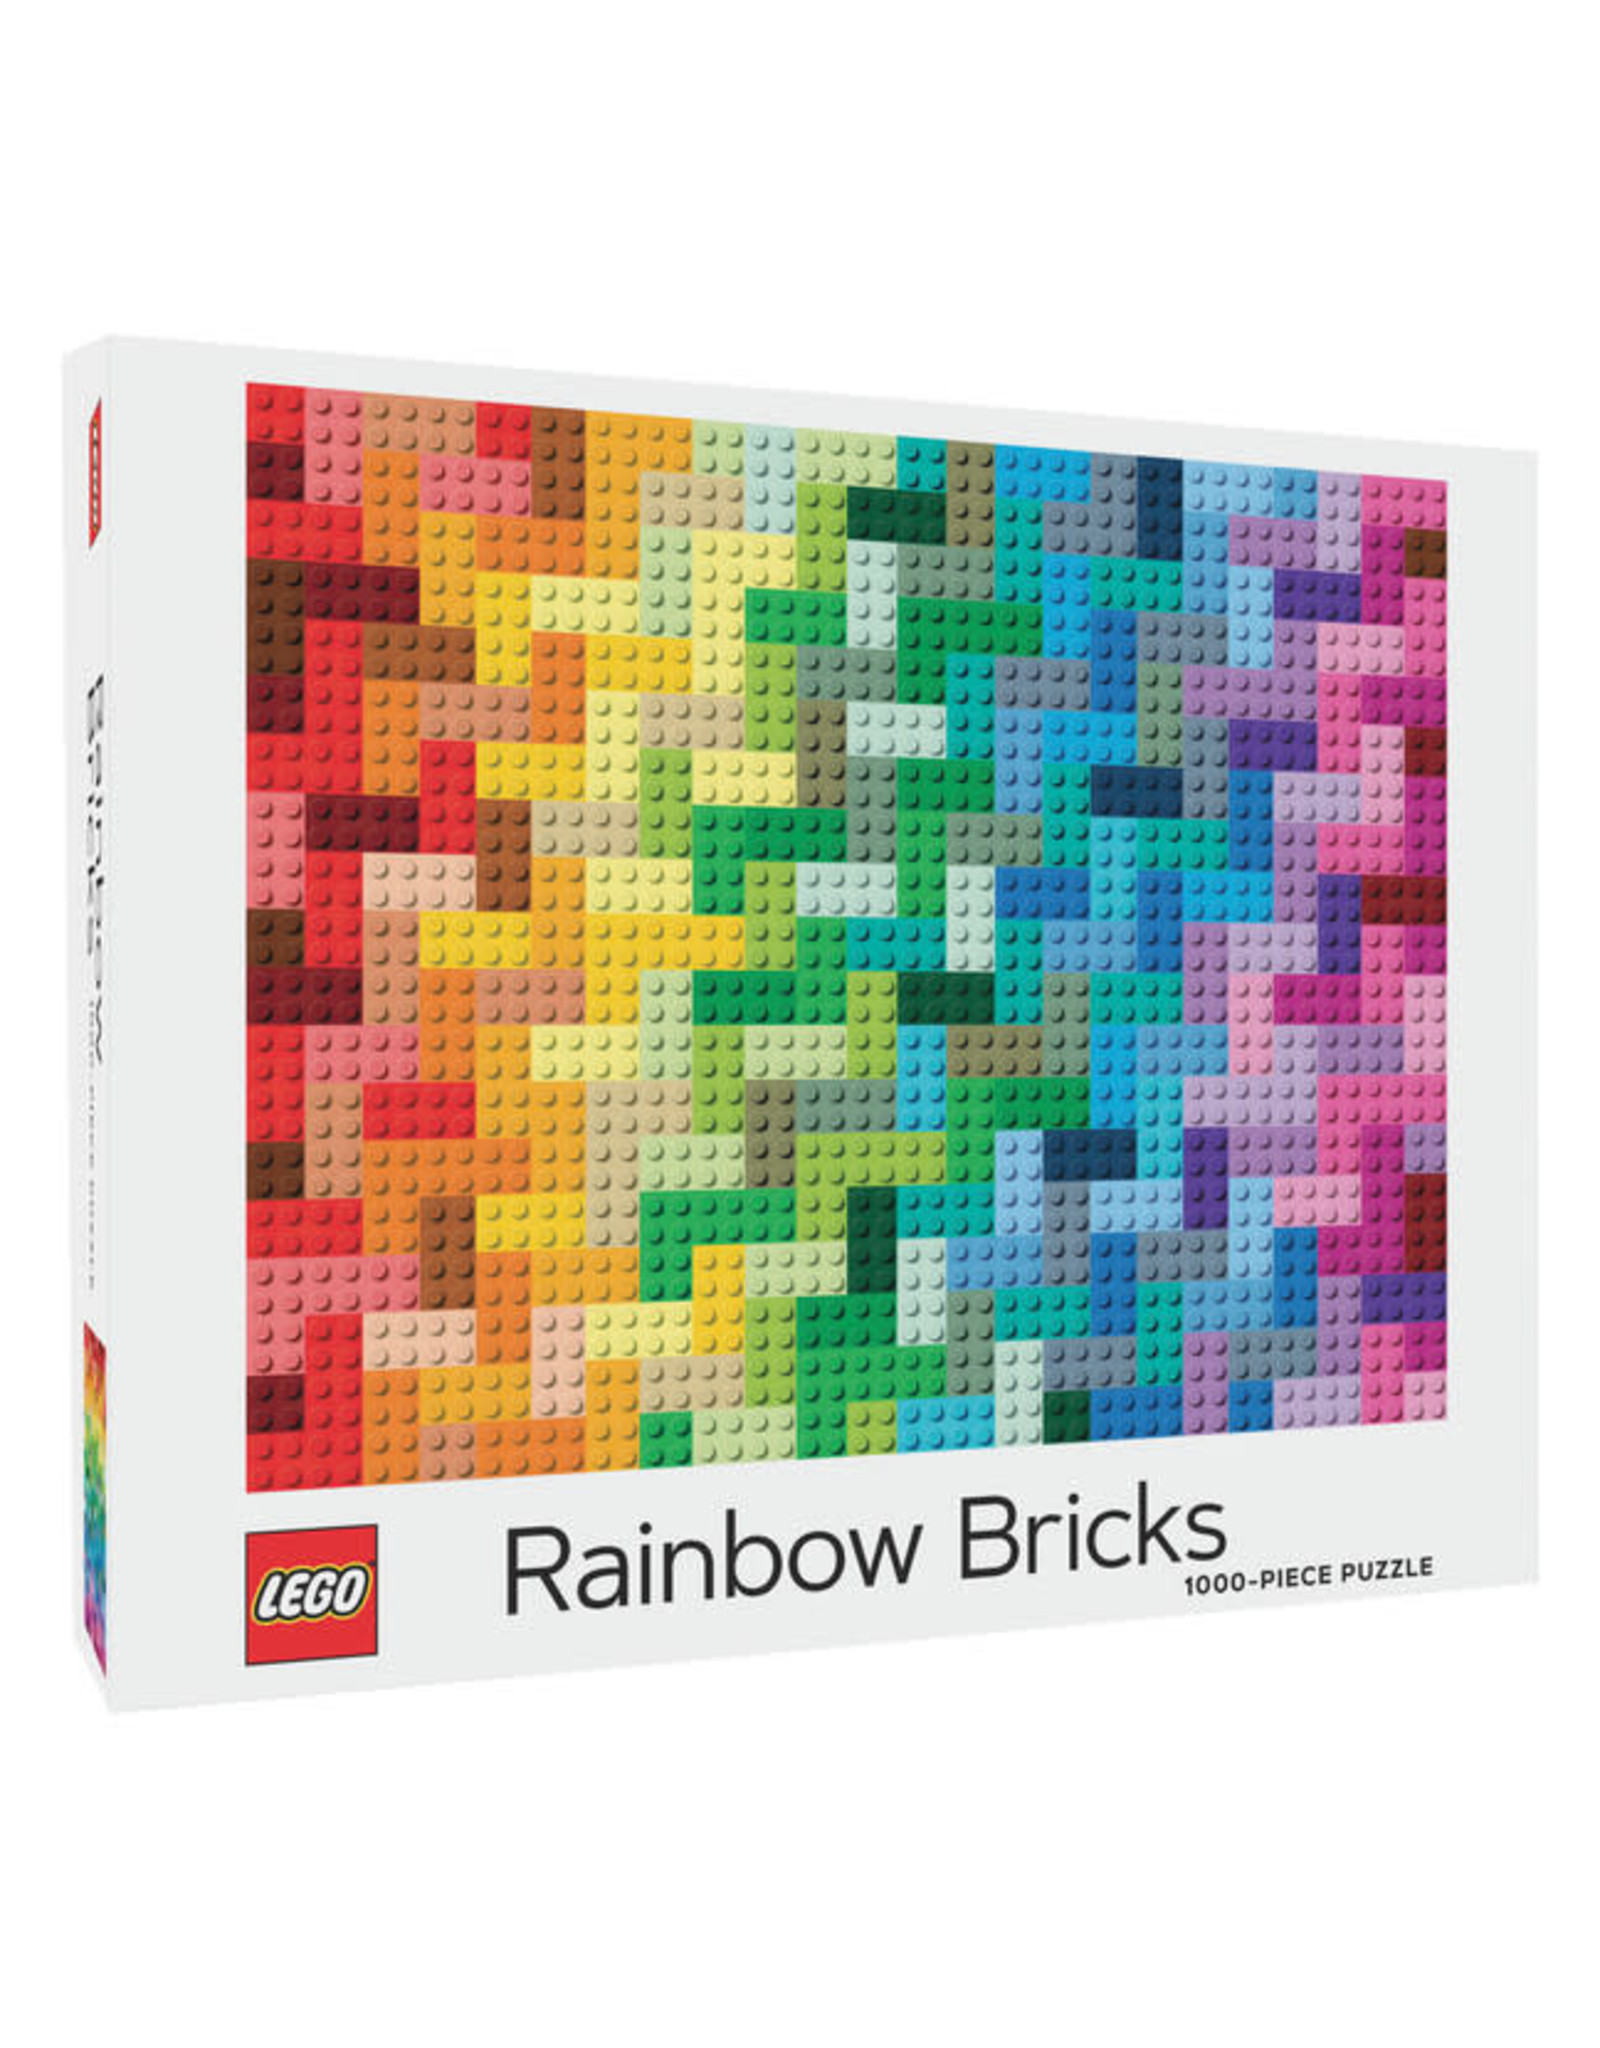 RST - Lego Rainbow Bricks 1000 Piece Puzzle